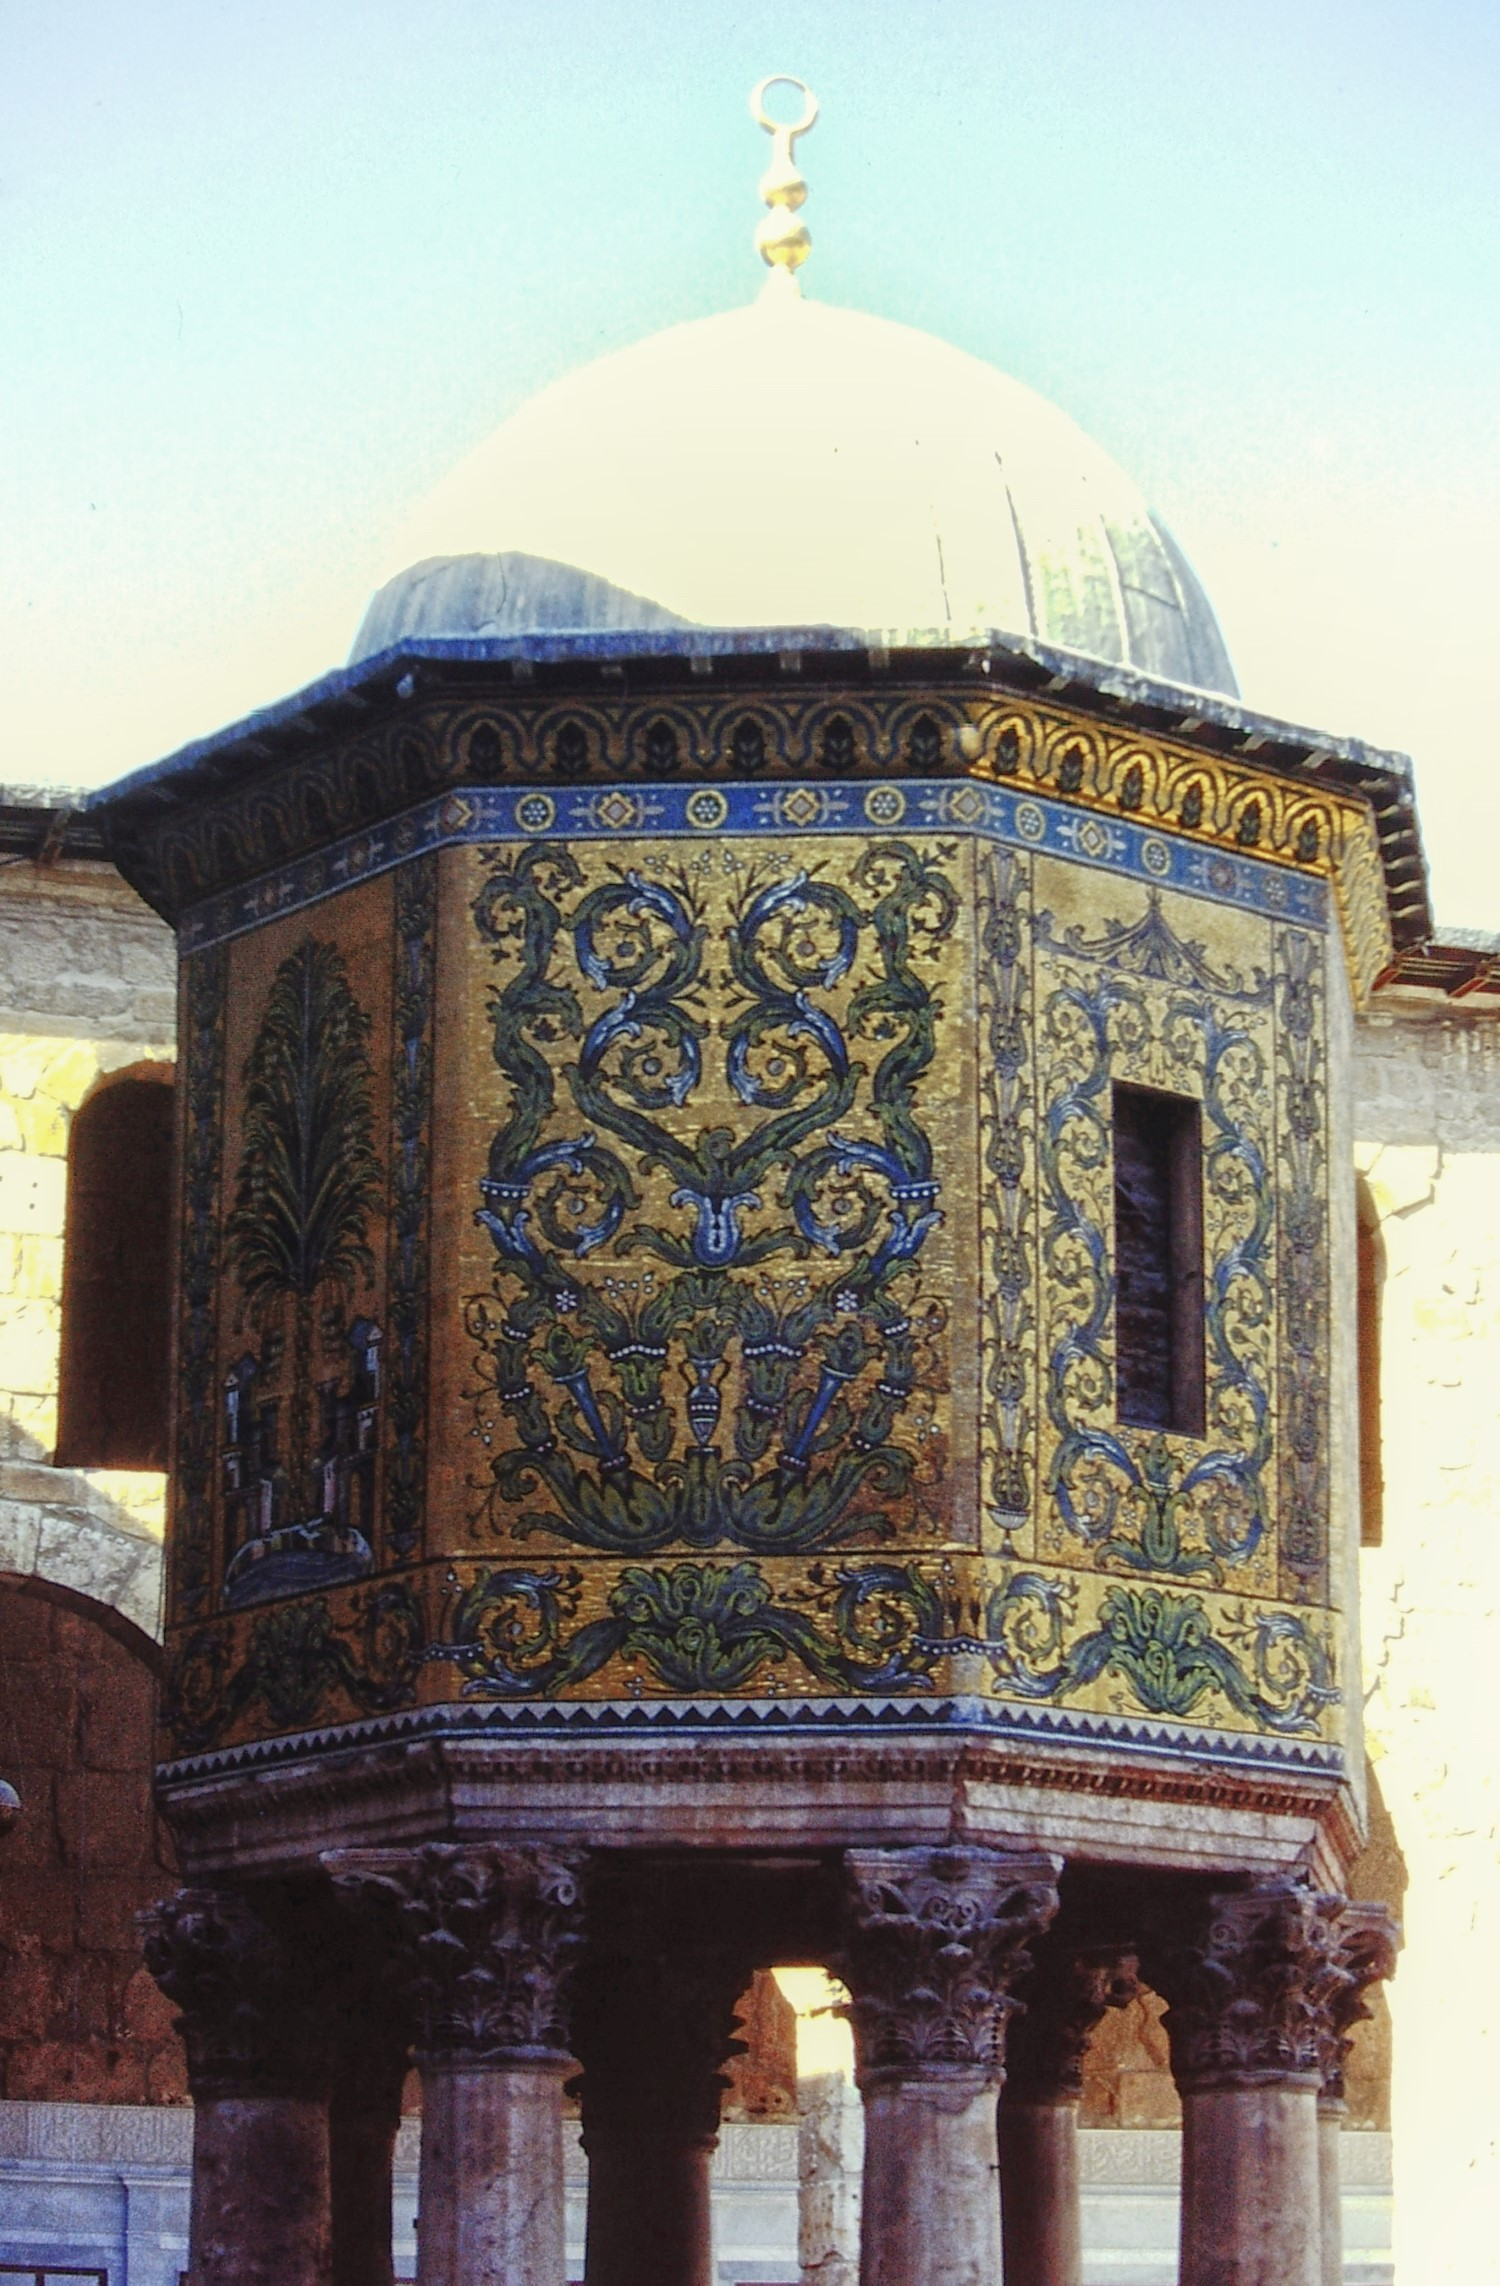 Ornate mosque building